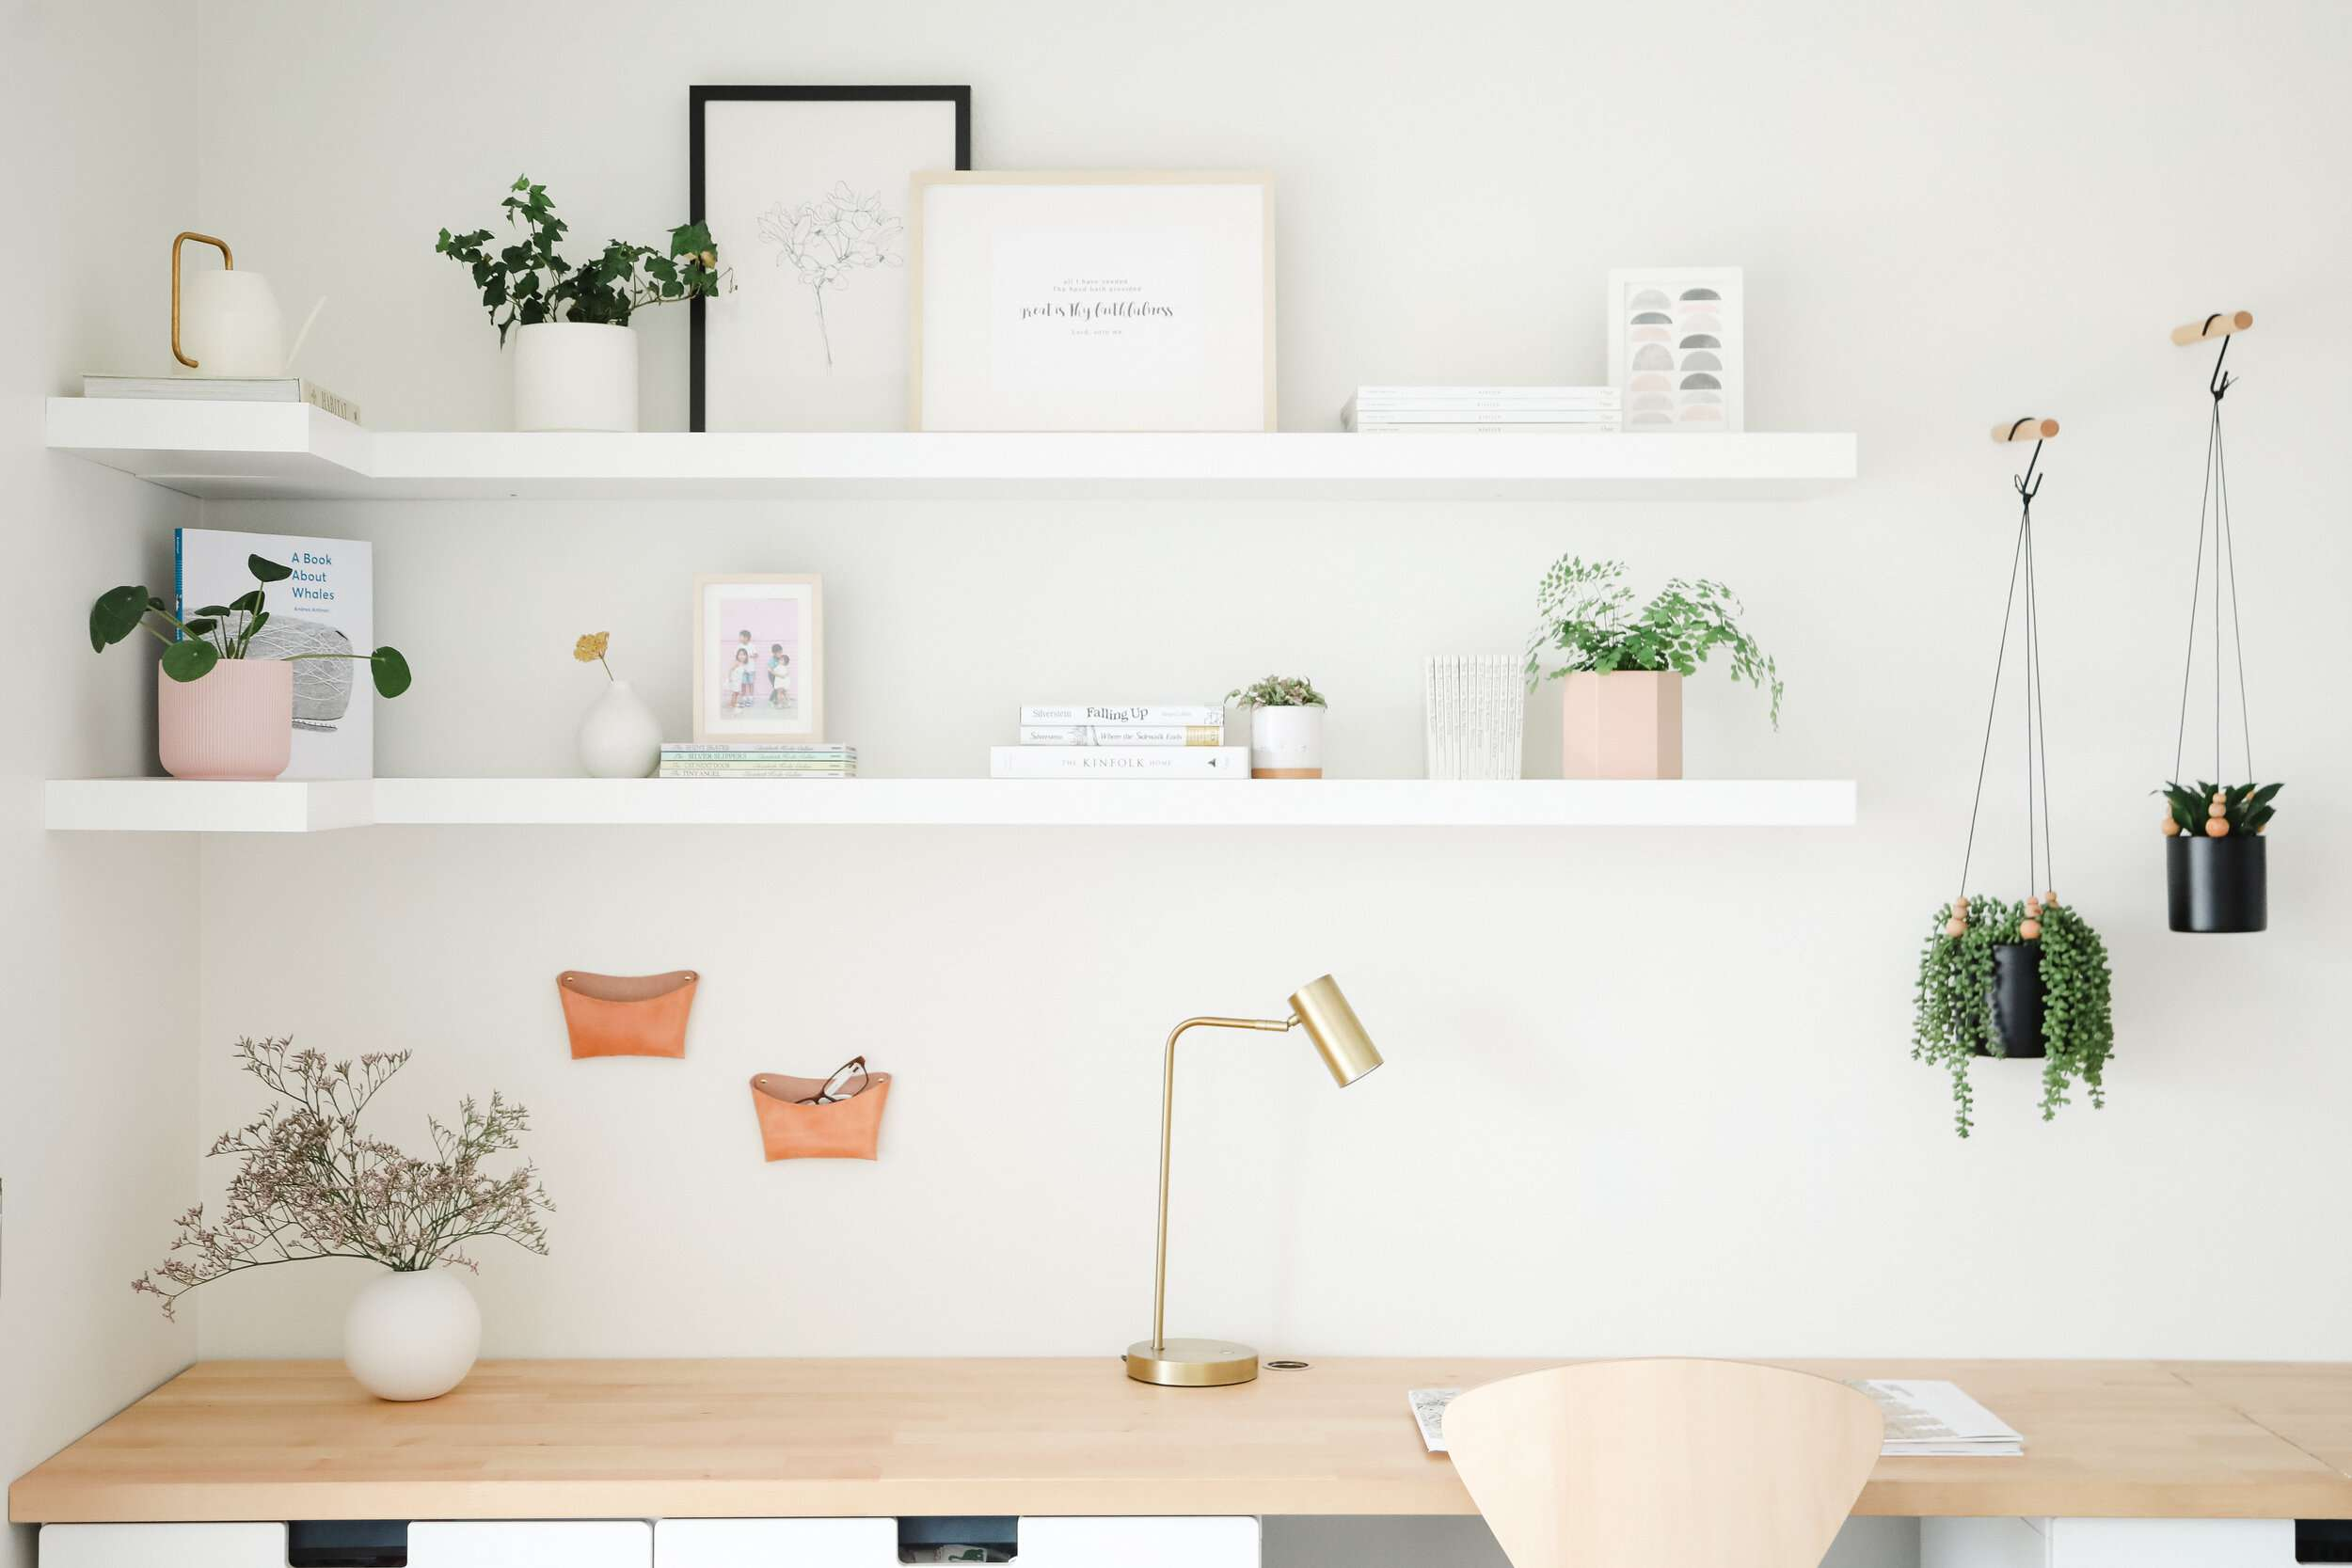 Office with white walls and hanging plants